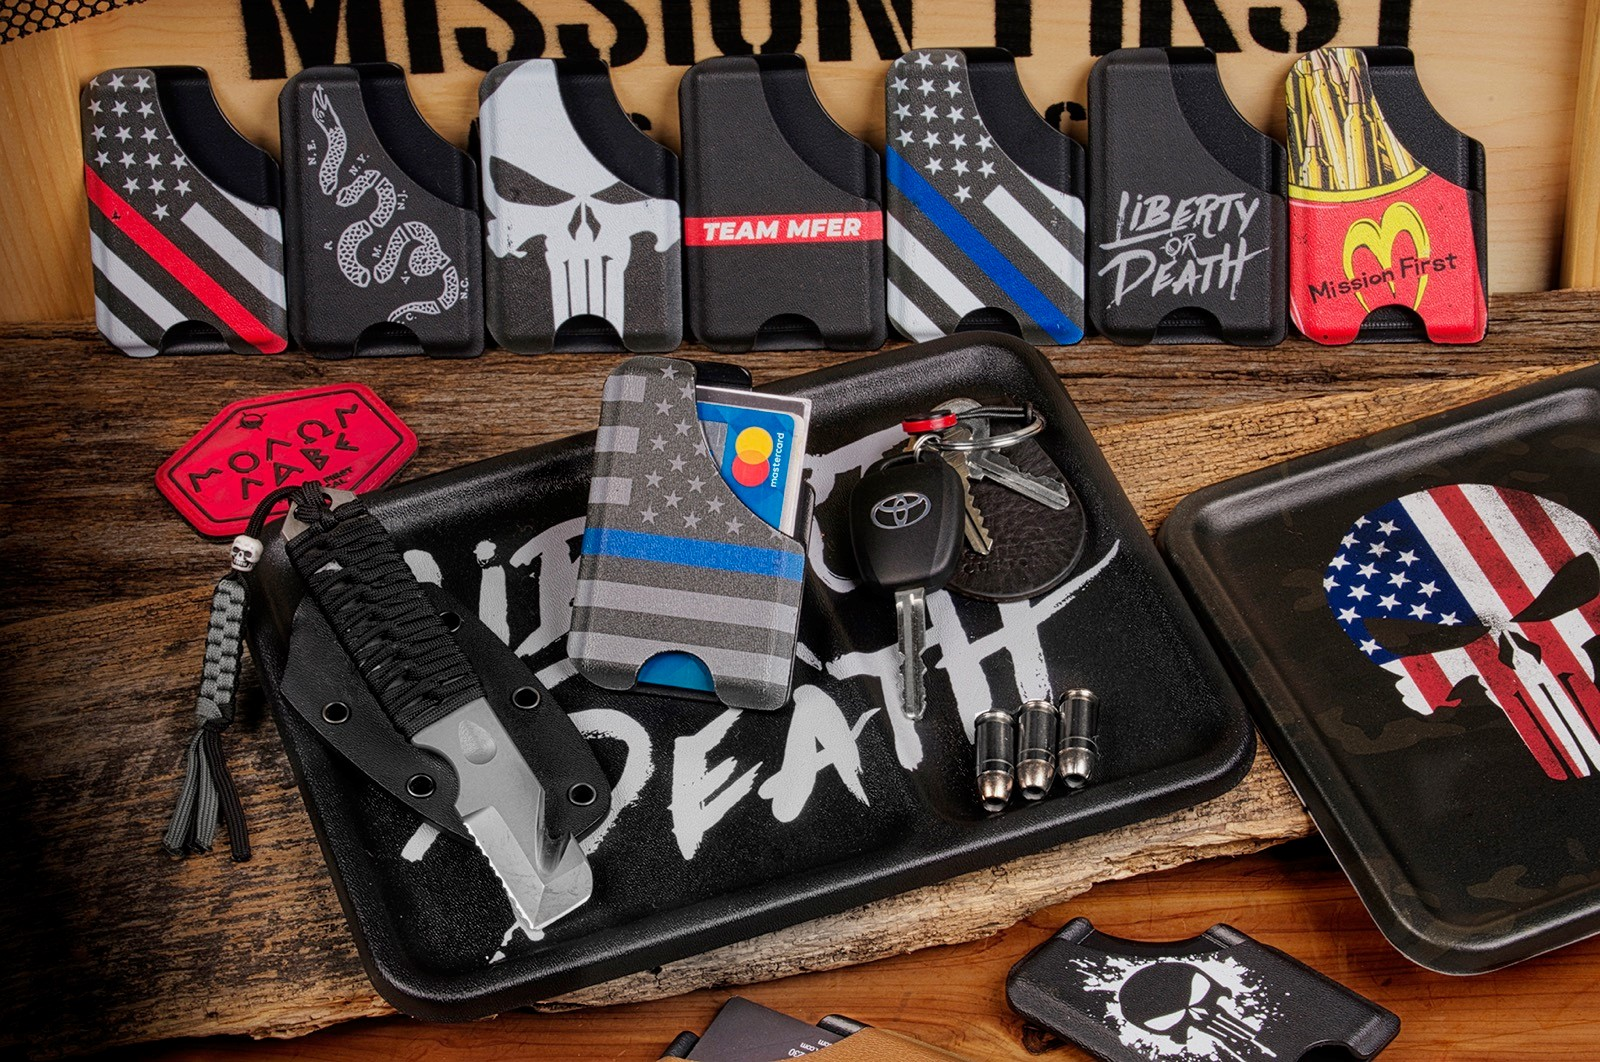 Mission First Tactical (MFT) Introduces New Decorated Wallets and Dump Trays